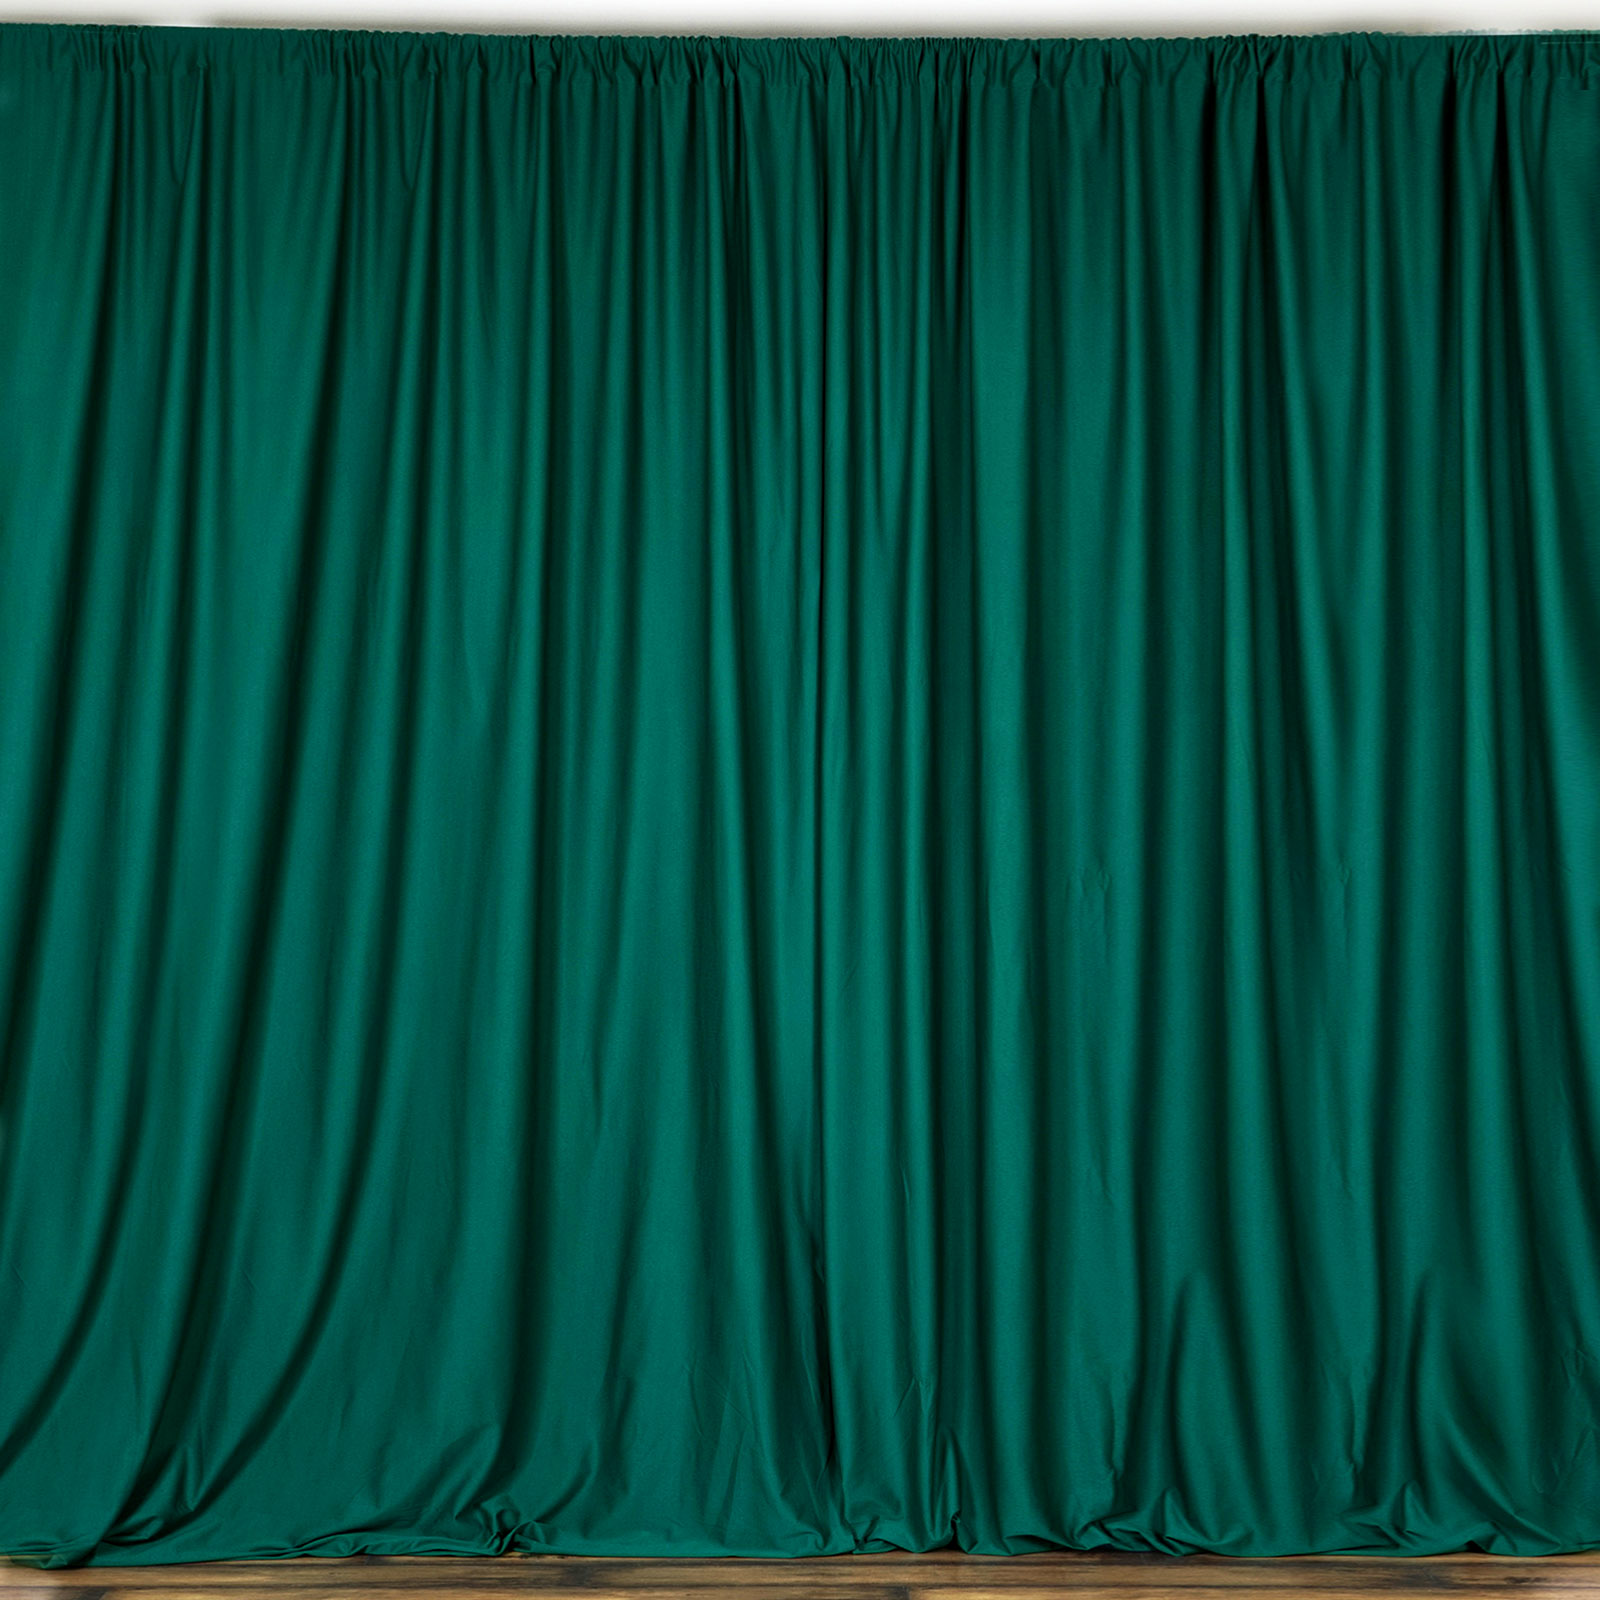 Curtains Wedding Decoration 10 Ft X 10 Ft Polyester Professional Backdrop Curtains Wedding